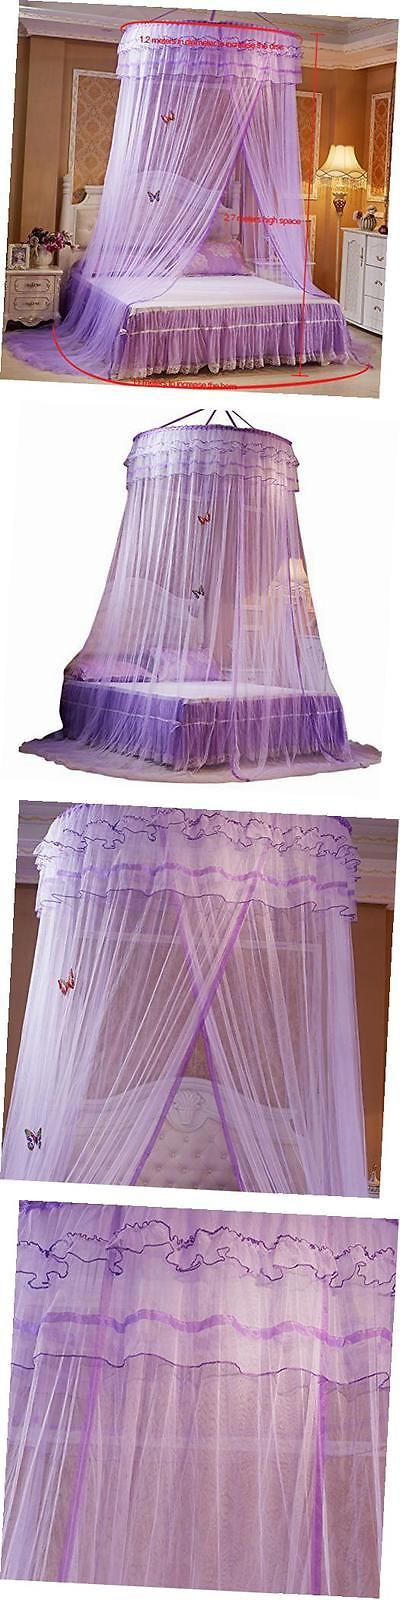 Canopies and Netting 48090: Round Mosquito Nets Luxury Princess Pastoral Lace Bed Canopy Net Crib Luminous -> BUY IT NOW ONLY: $40.3 on eBay!